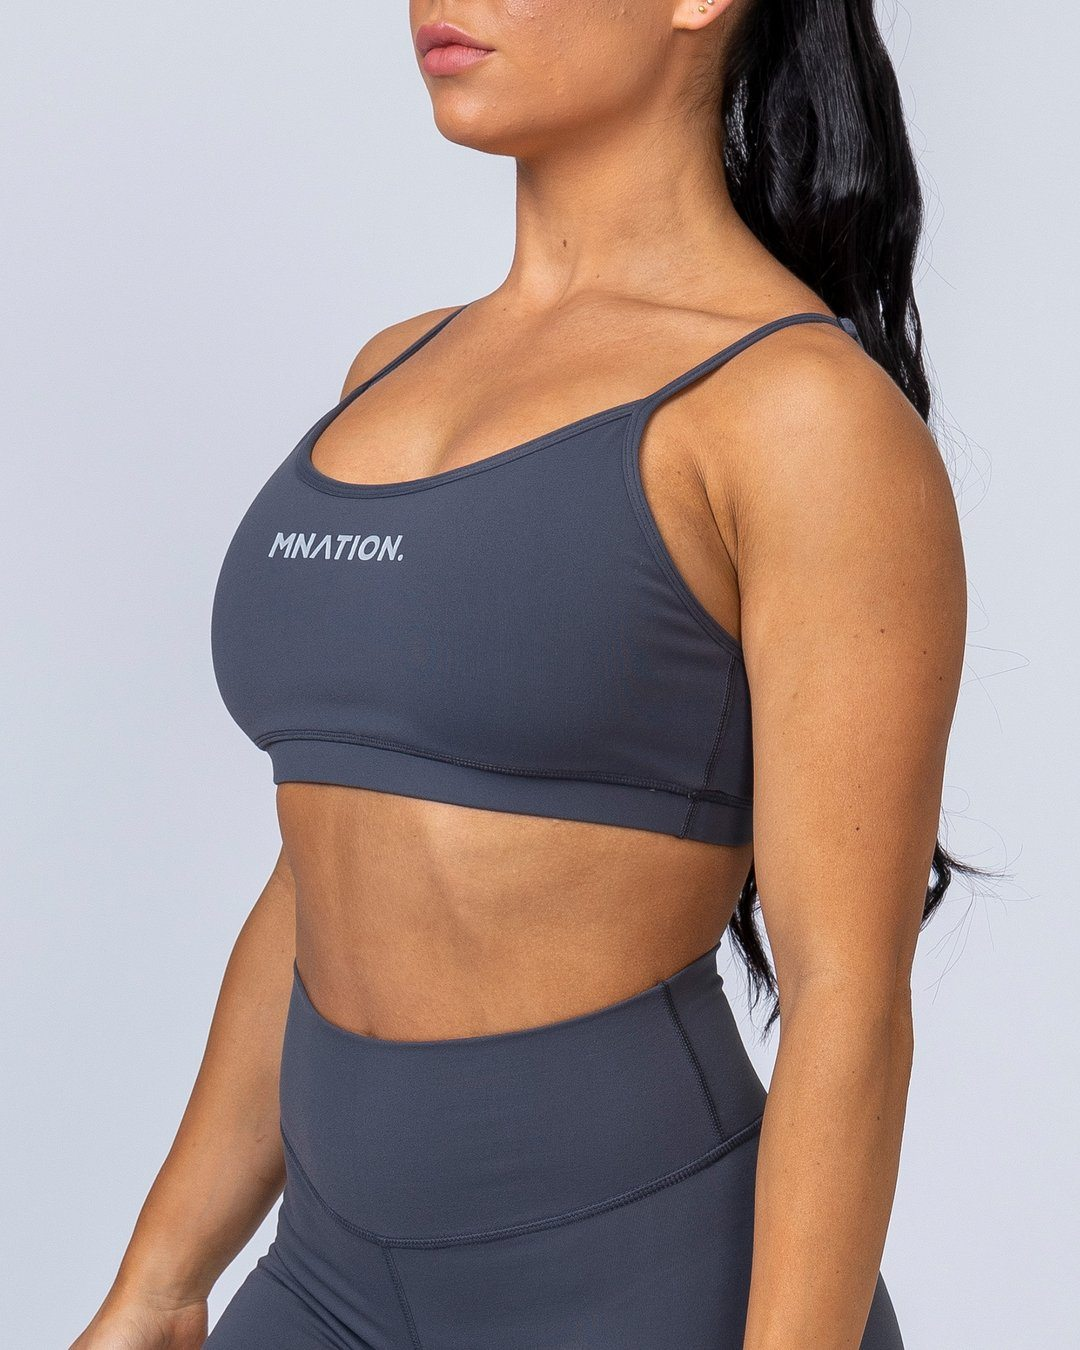 Muscle Nation Scoop Bra - Shadow Grey